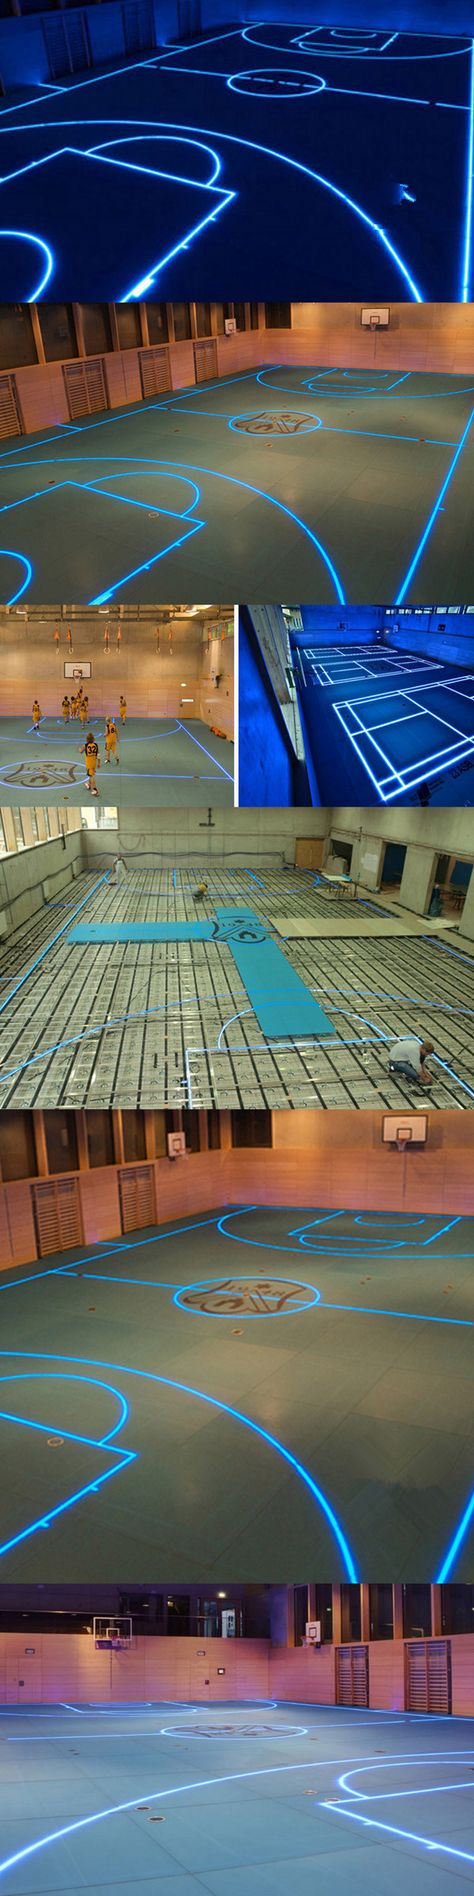 The underneath LED light source can turn this stadium floor into a hockey rink…